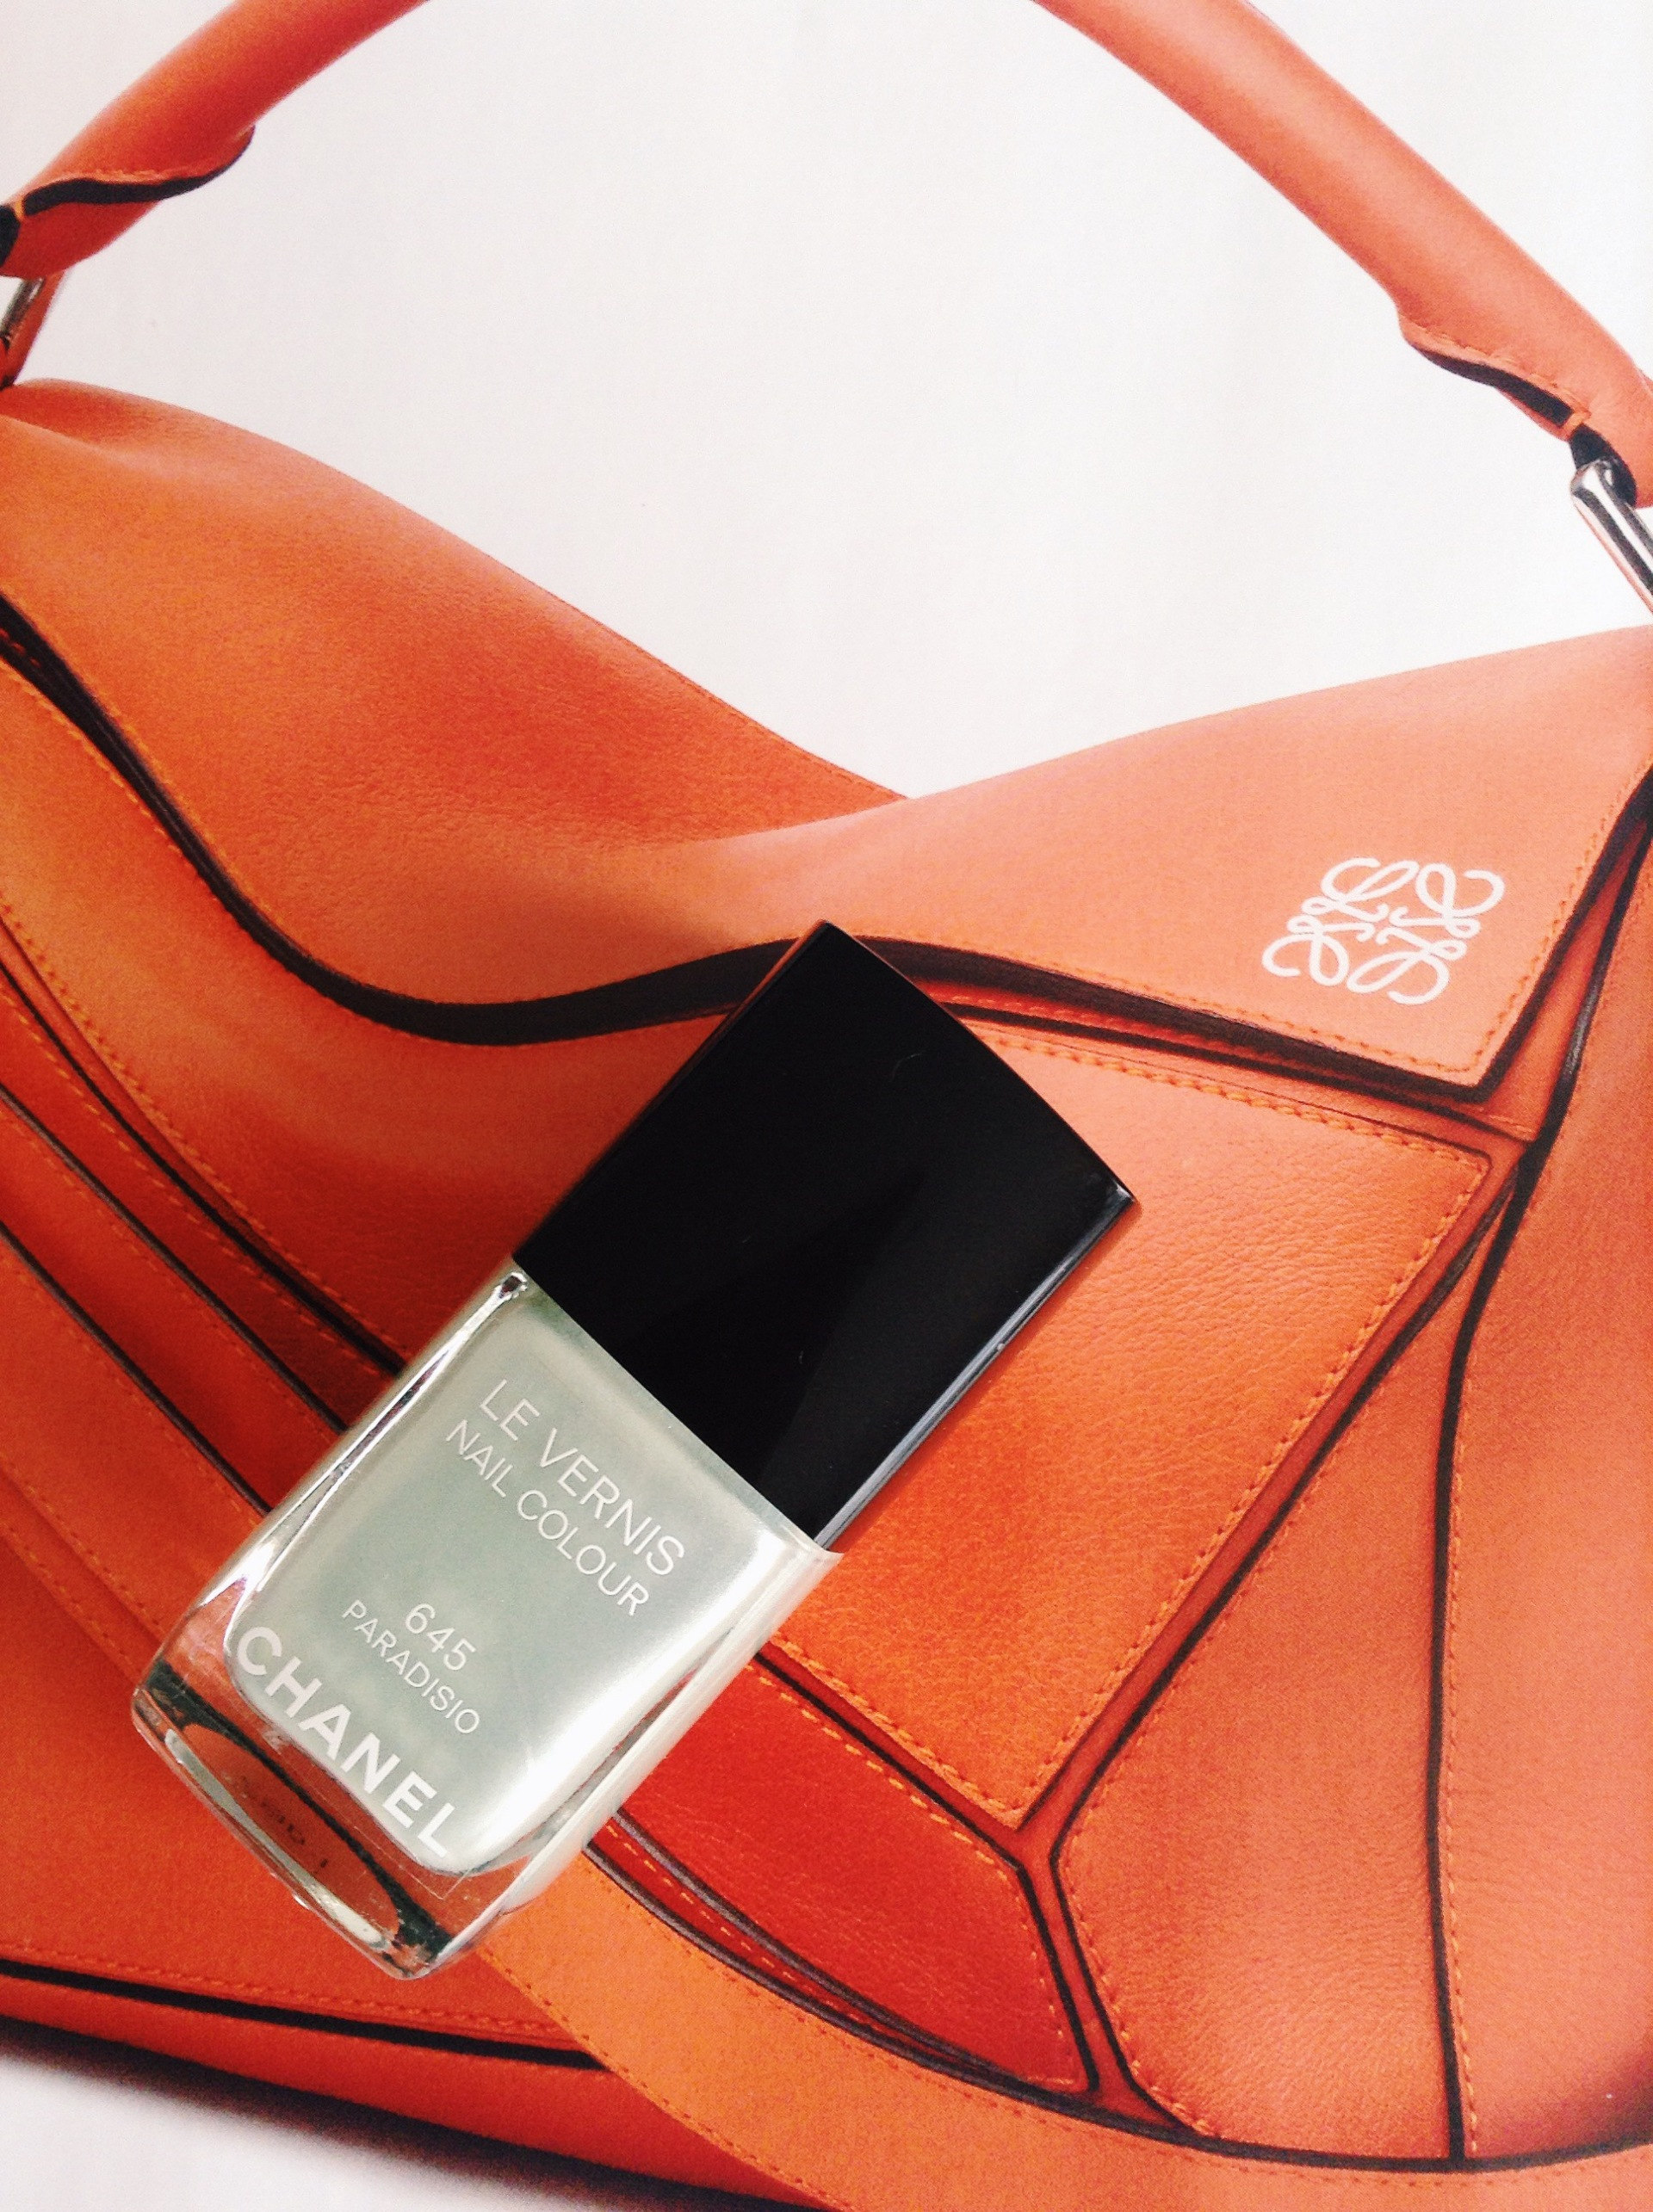 Chanel Paradiso Nail varnish